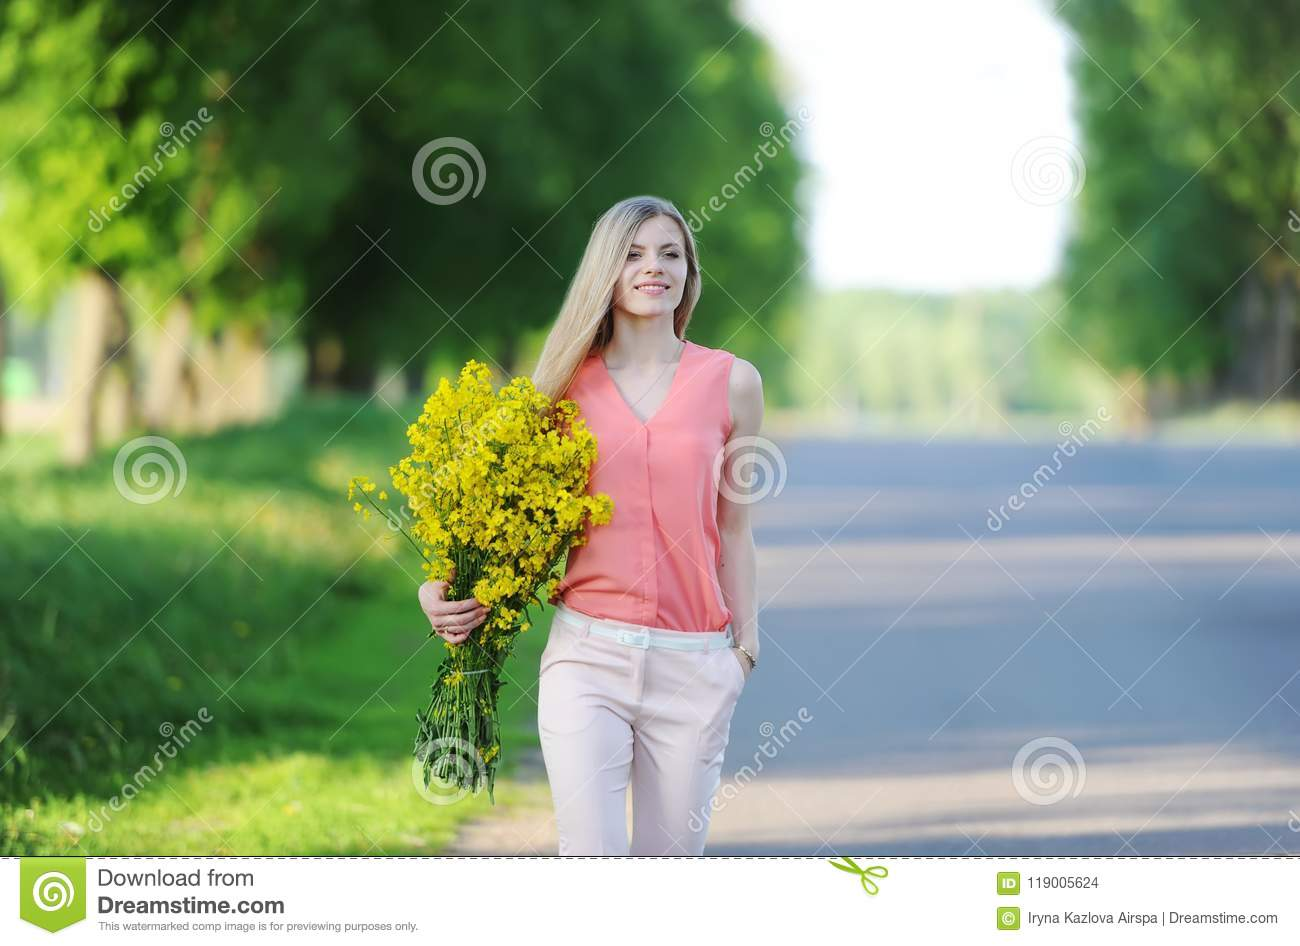 Young woman with bouquet of yellow colors walks outdoors